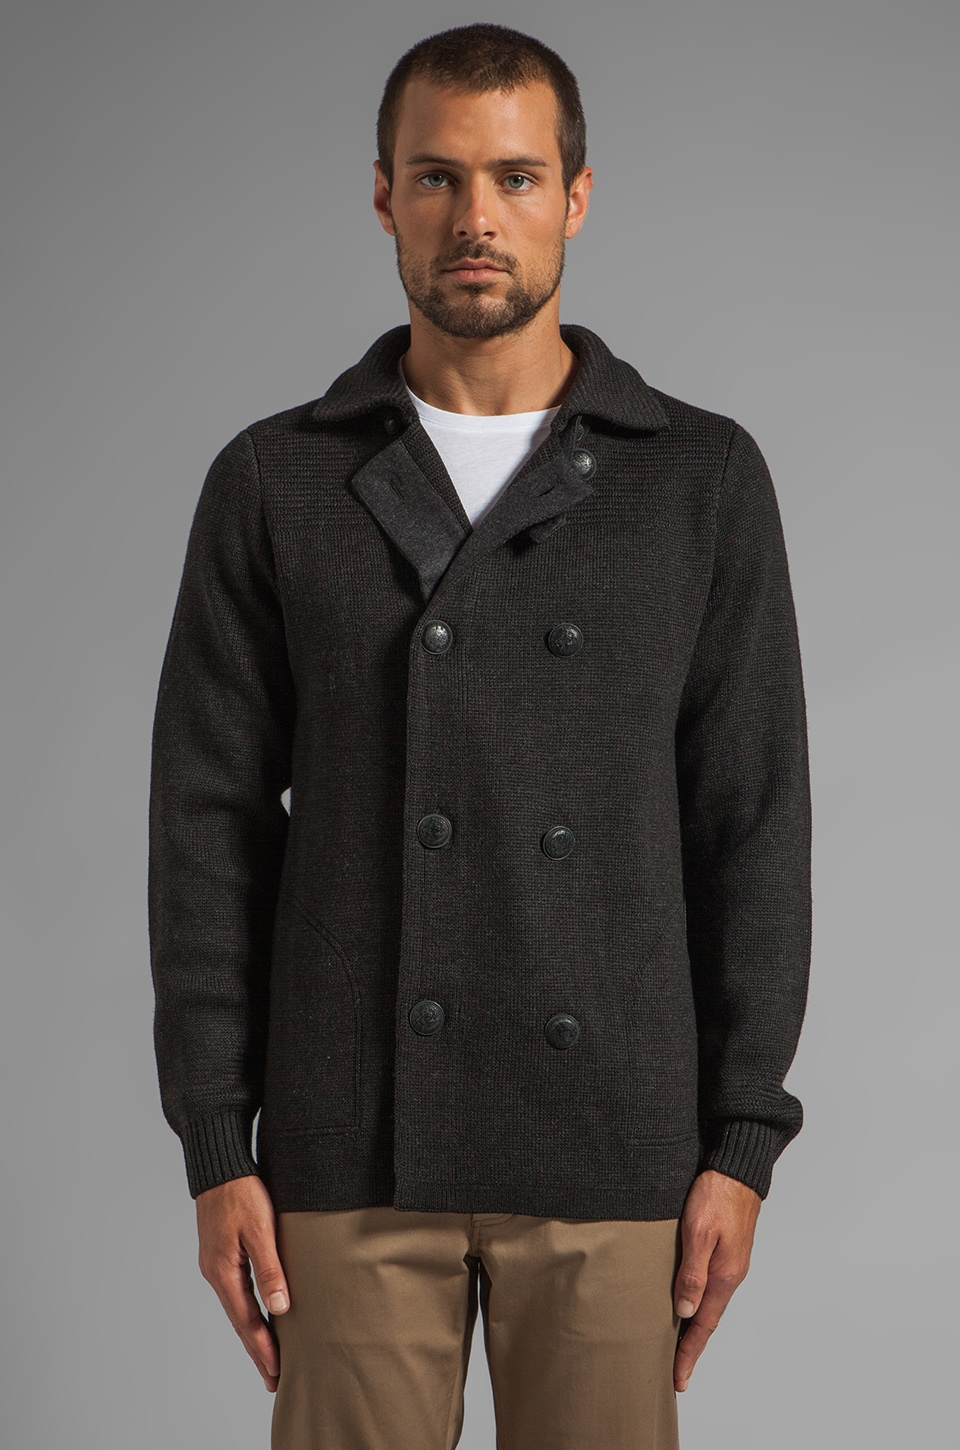 Vince Wool Peacoat Sweater in Heather Black